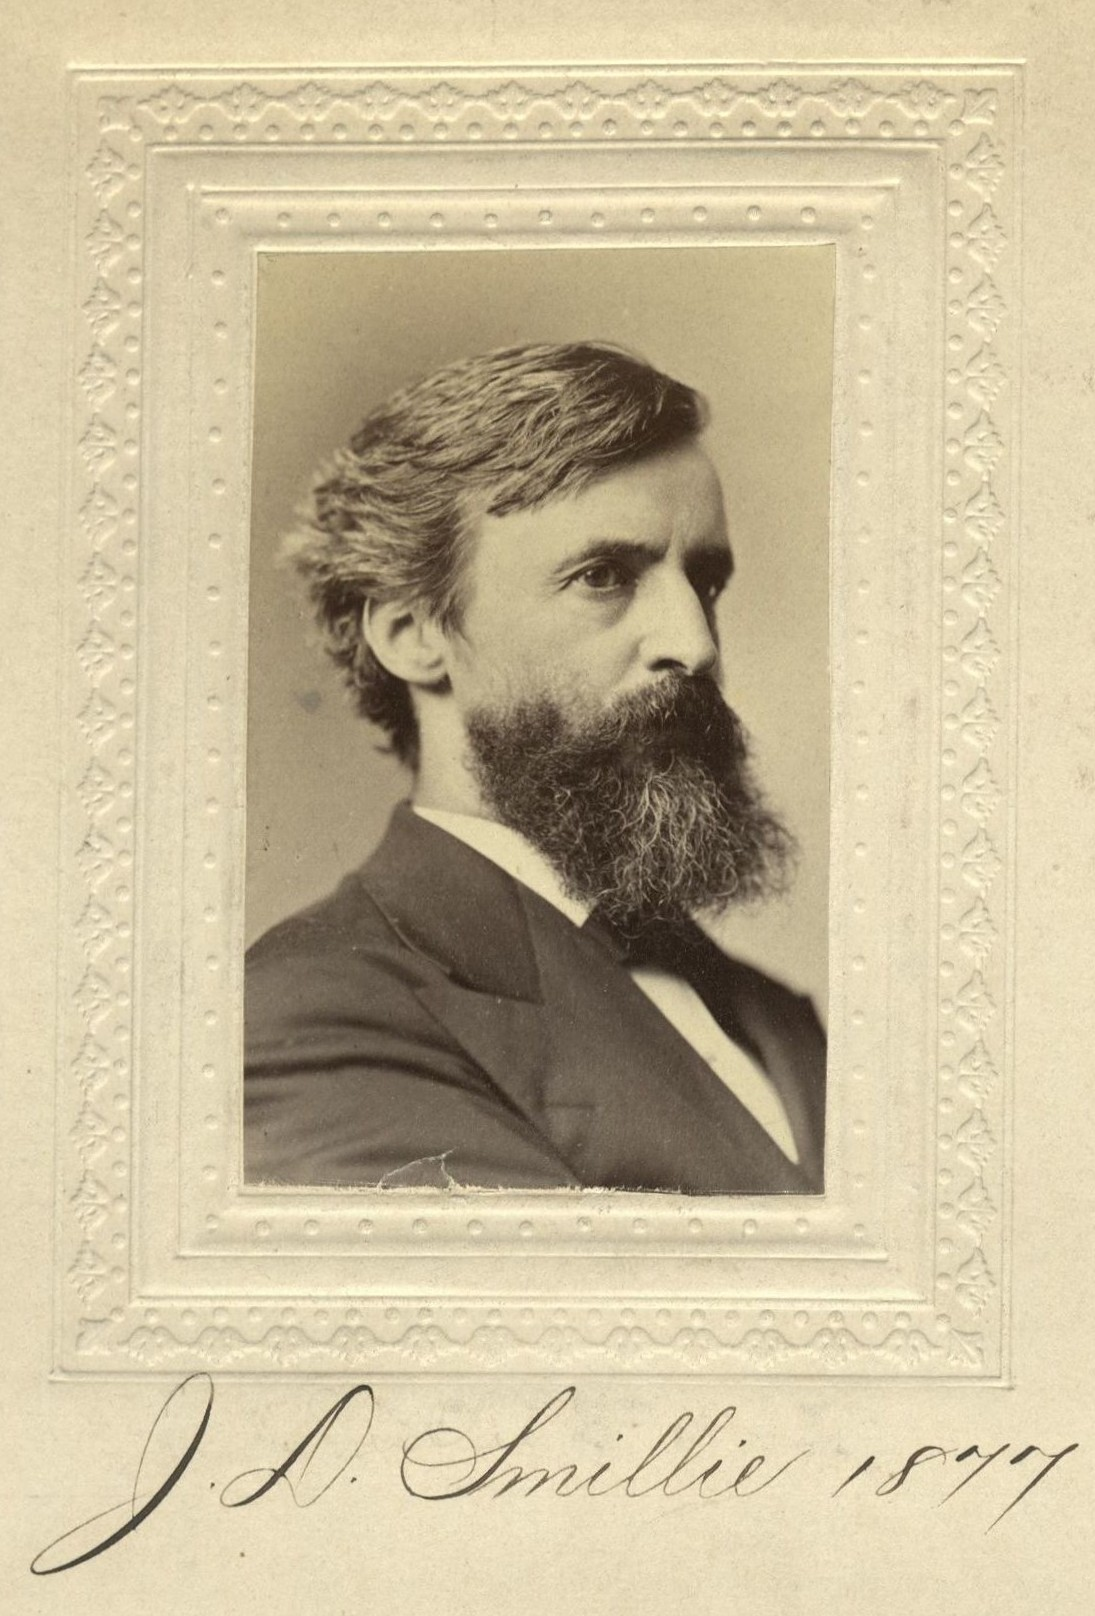 Member portrait of James D. Smillie